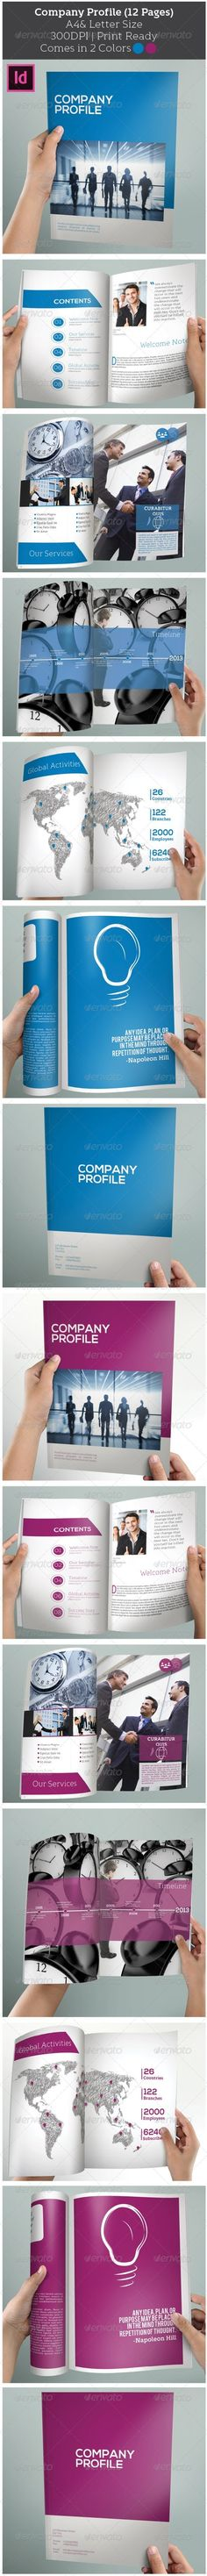 Company Profile (12 Pages) Brochure. This brochure can serve multiple purposes. You can use as a corporate identity brochure to represents your business, services and more.  Everything is editable right in Indesign. Just add your own pictures and texts, and it's ready for print. All colors can easily be changed. All texts are set with free fonts, and download links are provided. You can easily re-arrange pages and create more spreads based on the existing ones.